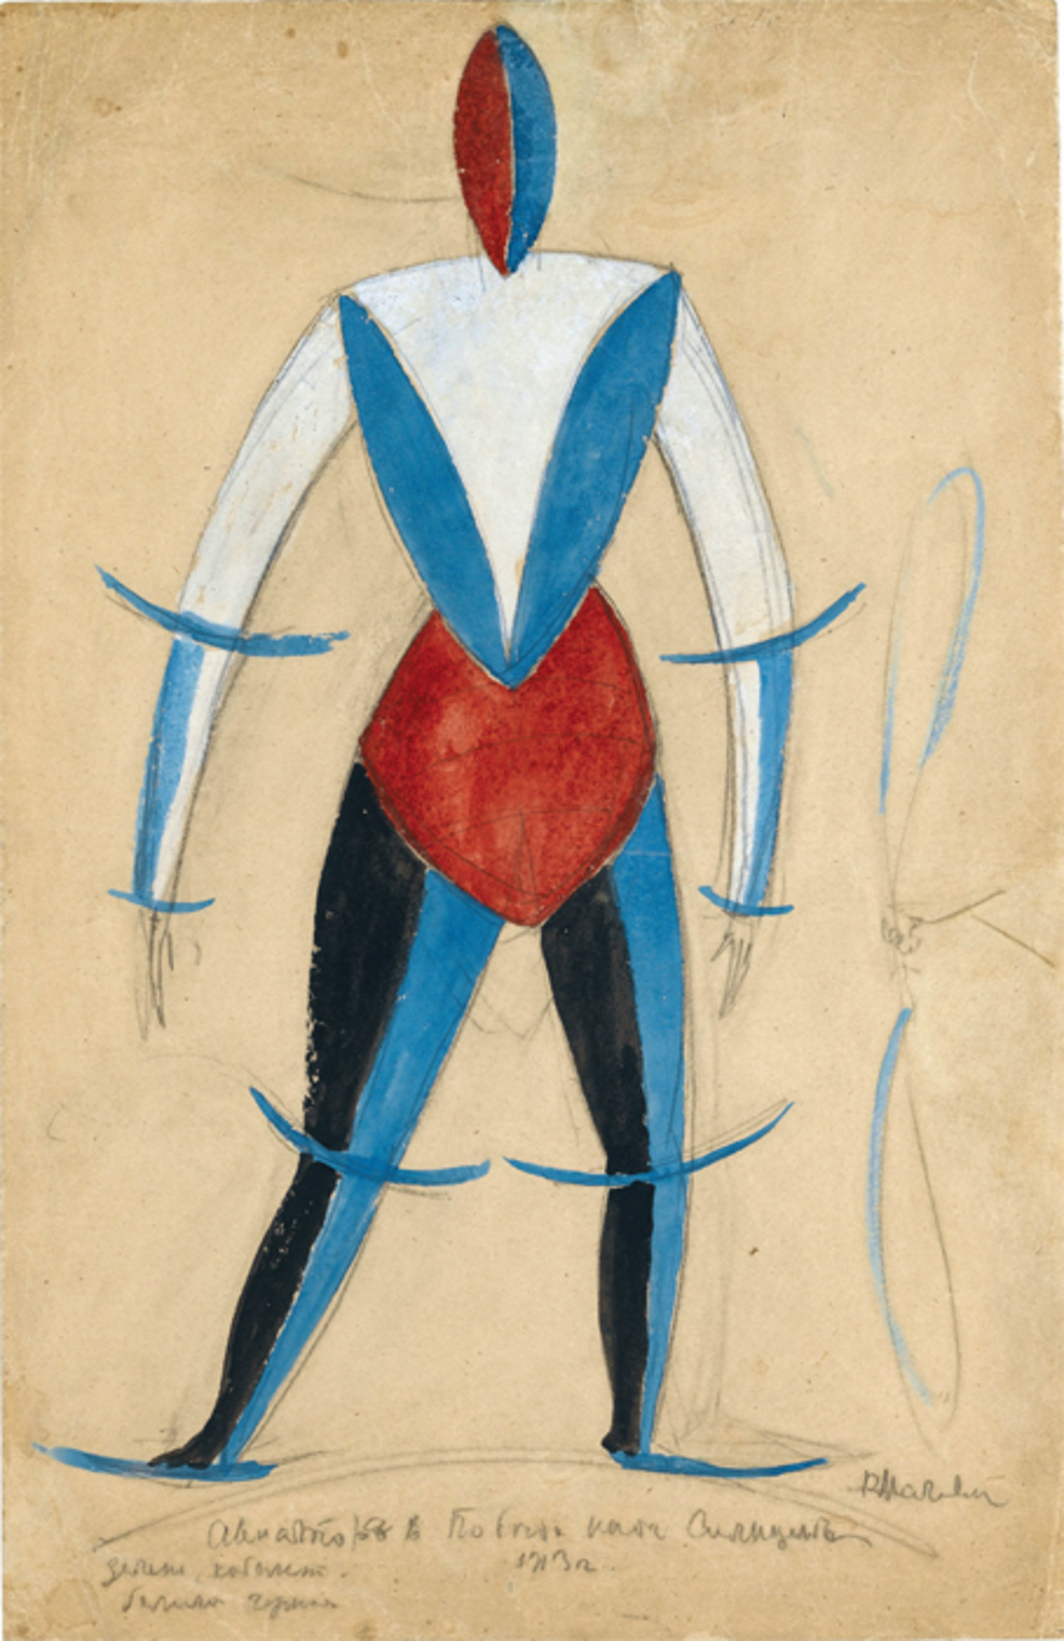 "Kazimir Malevich, Aviator in Victory over the Sun, 1930, gouache and pencil on paper, 24 5/8 x 16""."